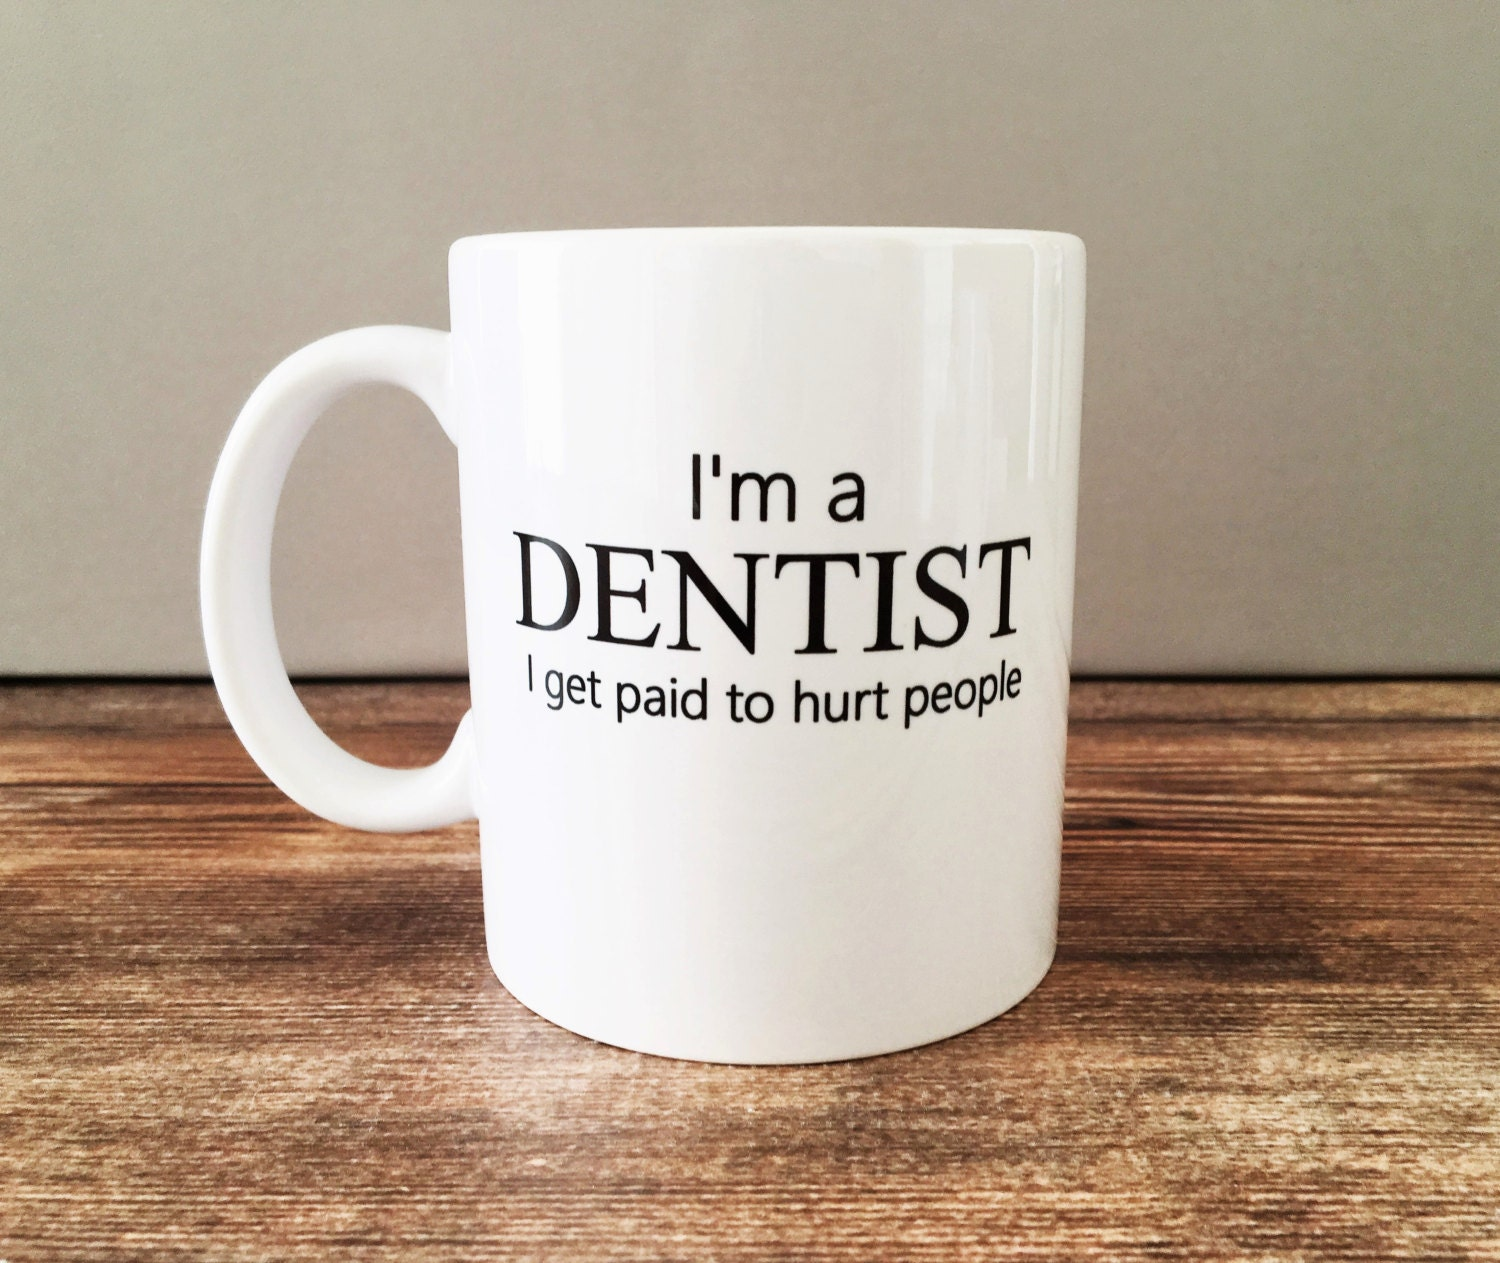 Funny Gifts For Dentists – Gift Ftempo